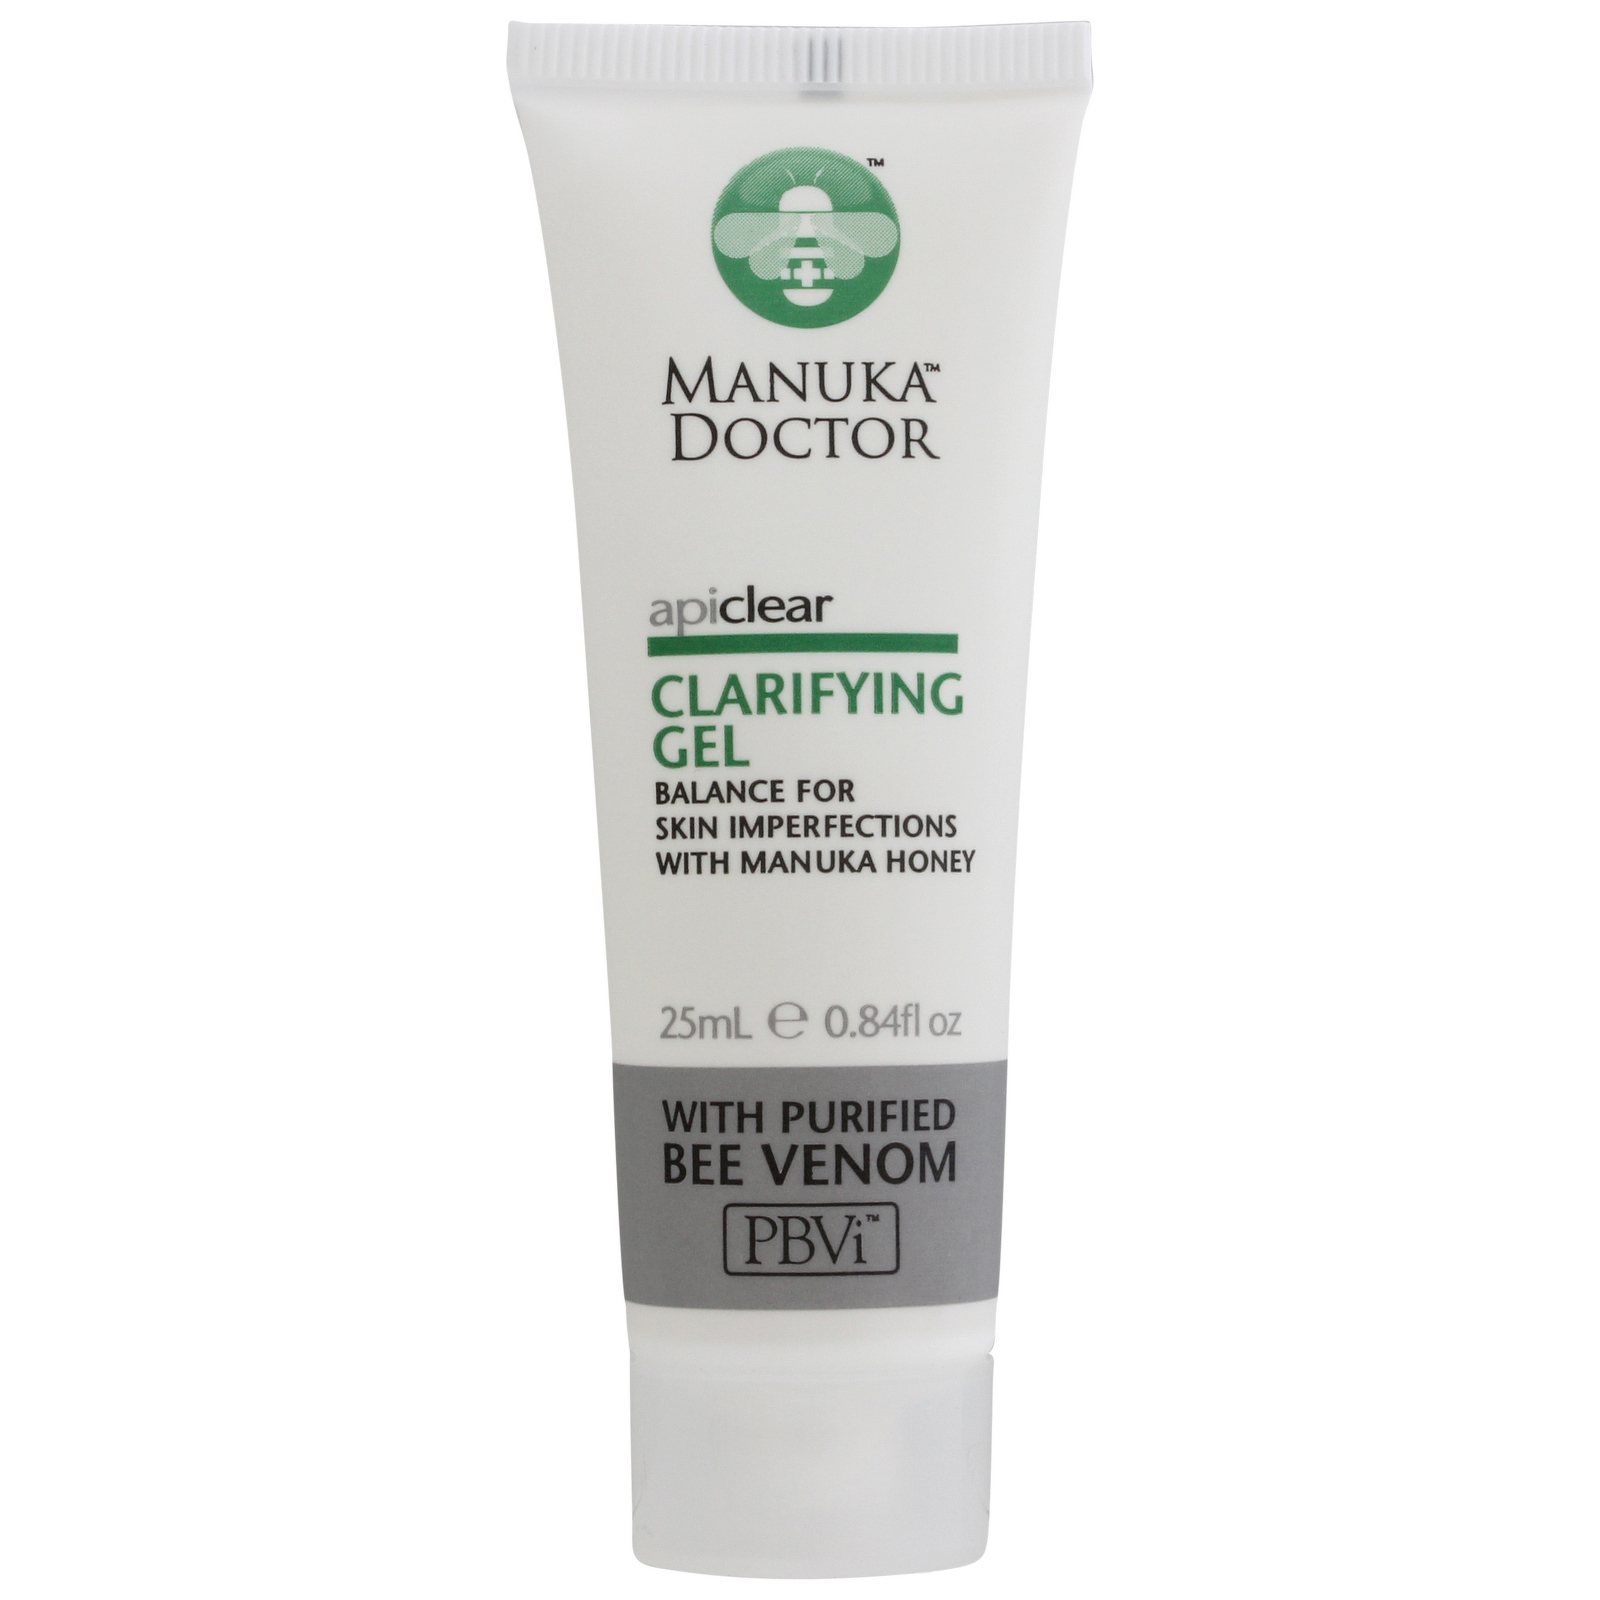 Manuka Doctor ApiClear Skin Clarifying Gel 25ml